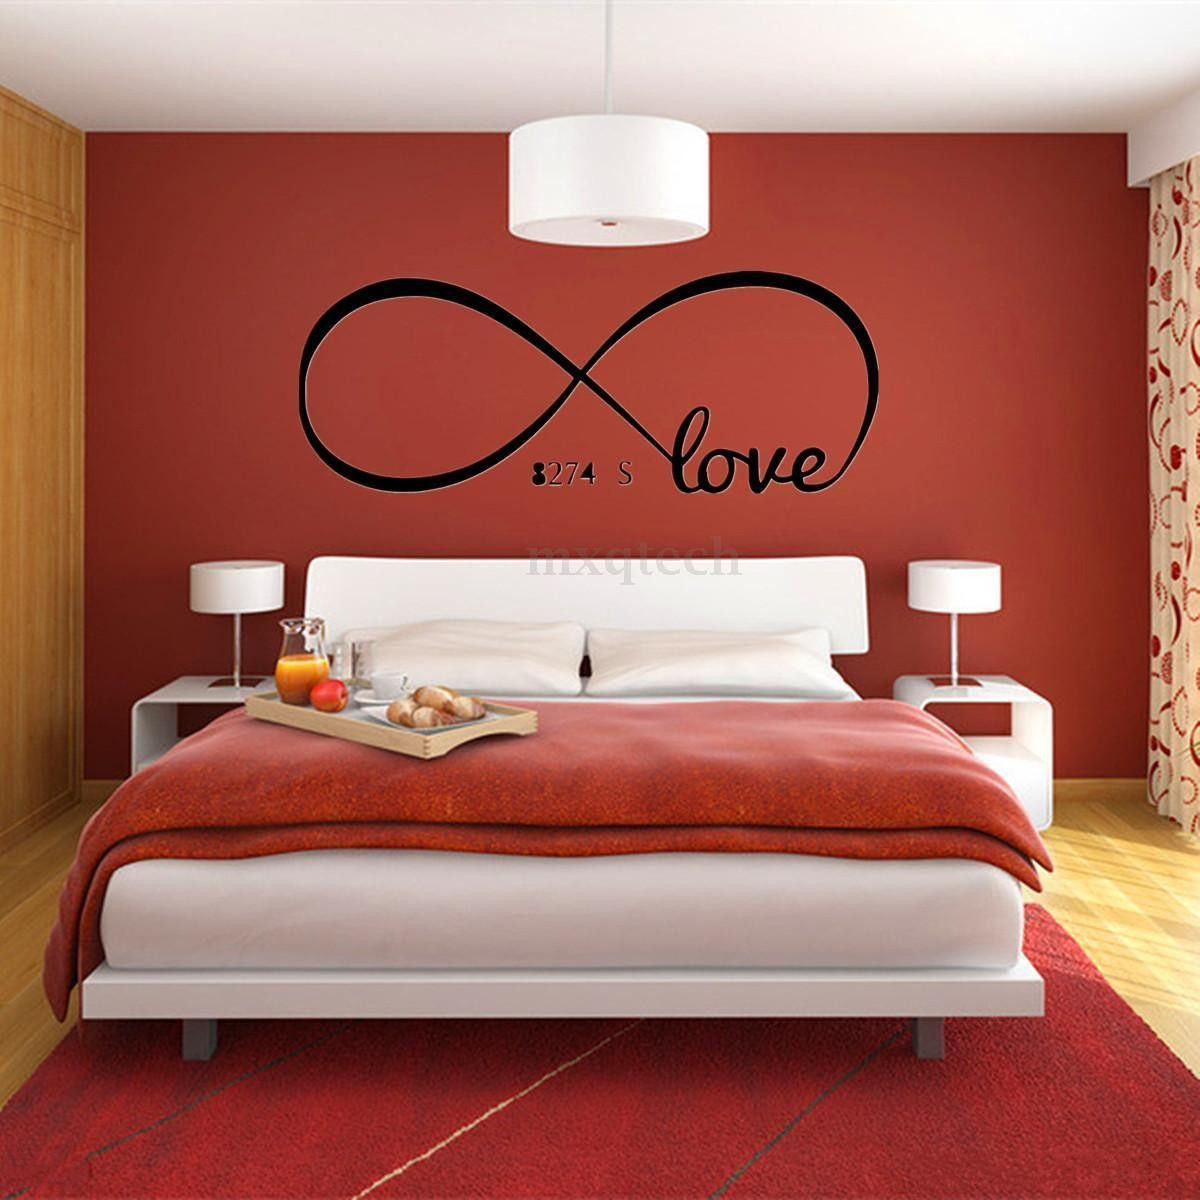 Make love to your partner with these beautiful bedroom wall stickers